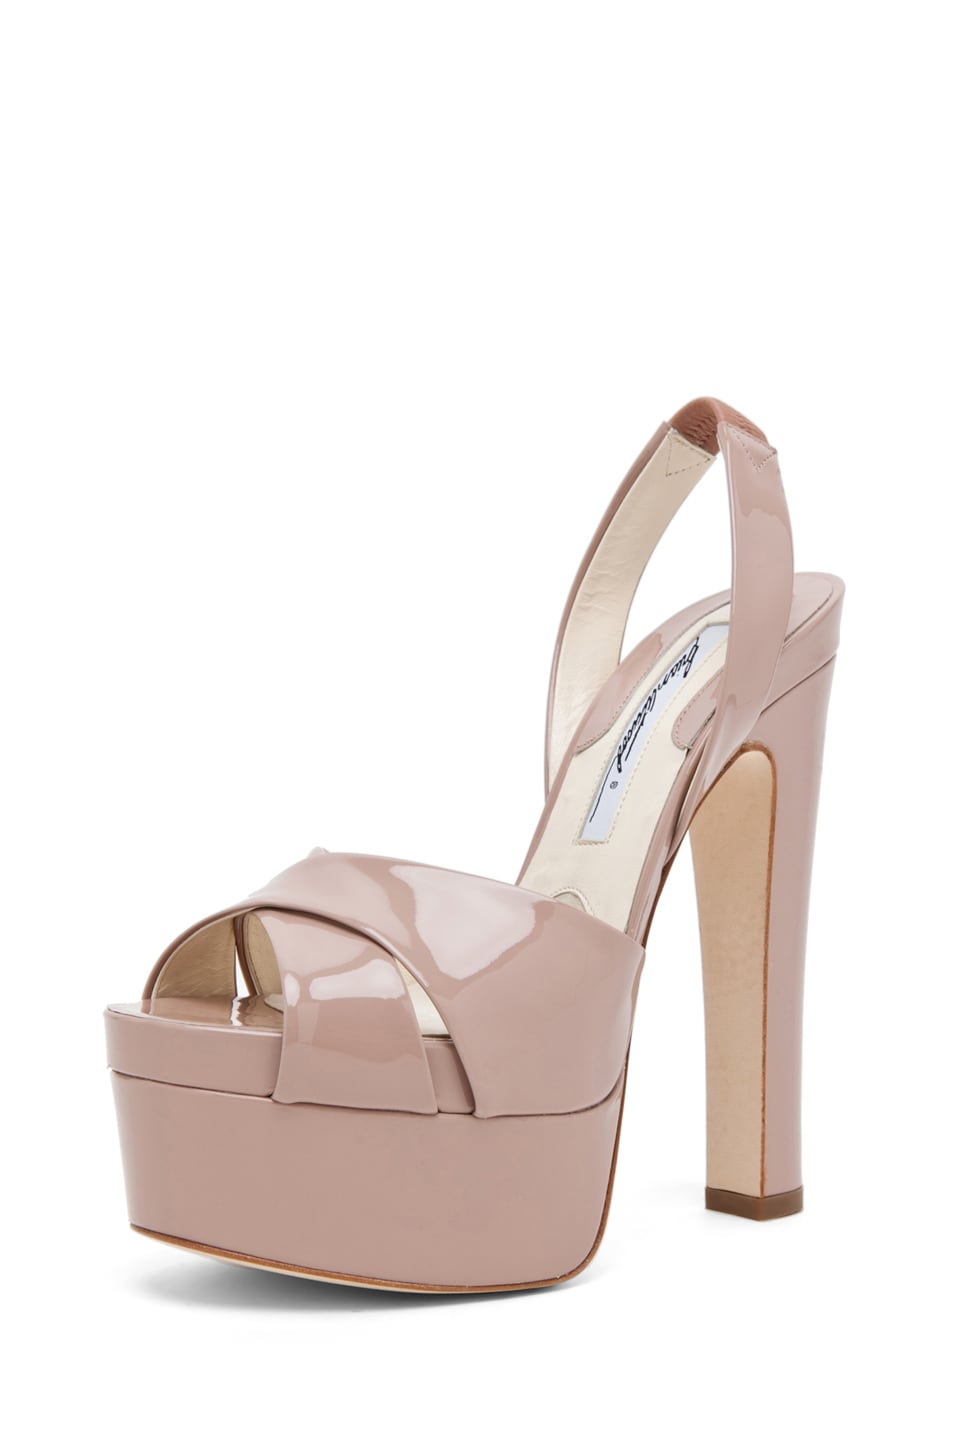 Image 2 of Brian Atwood Manhattan Sandal in Cappuccino Nude